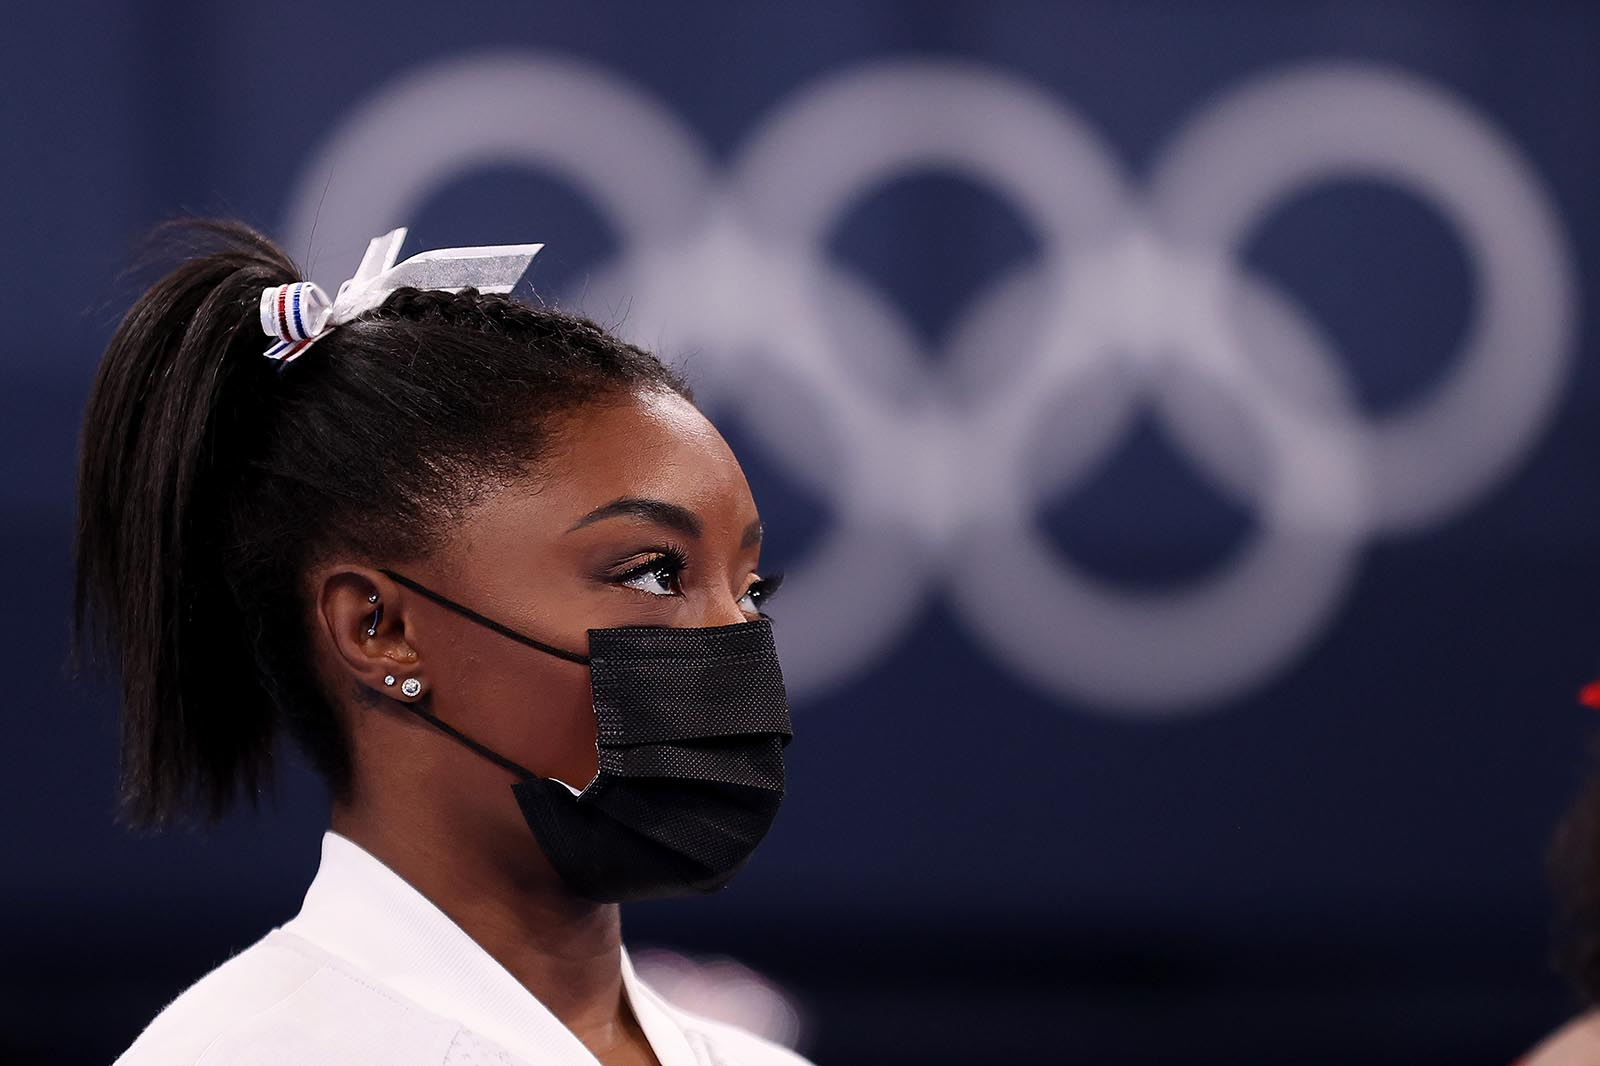 Simone Biles looks on during the Women's Team Final on July 27.